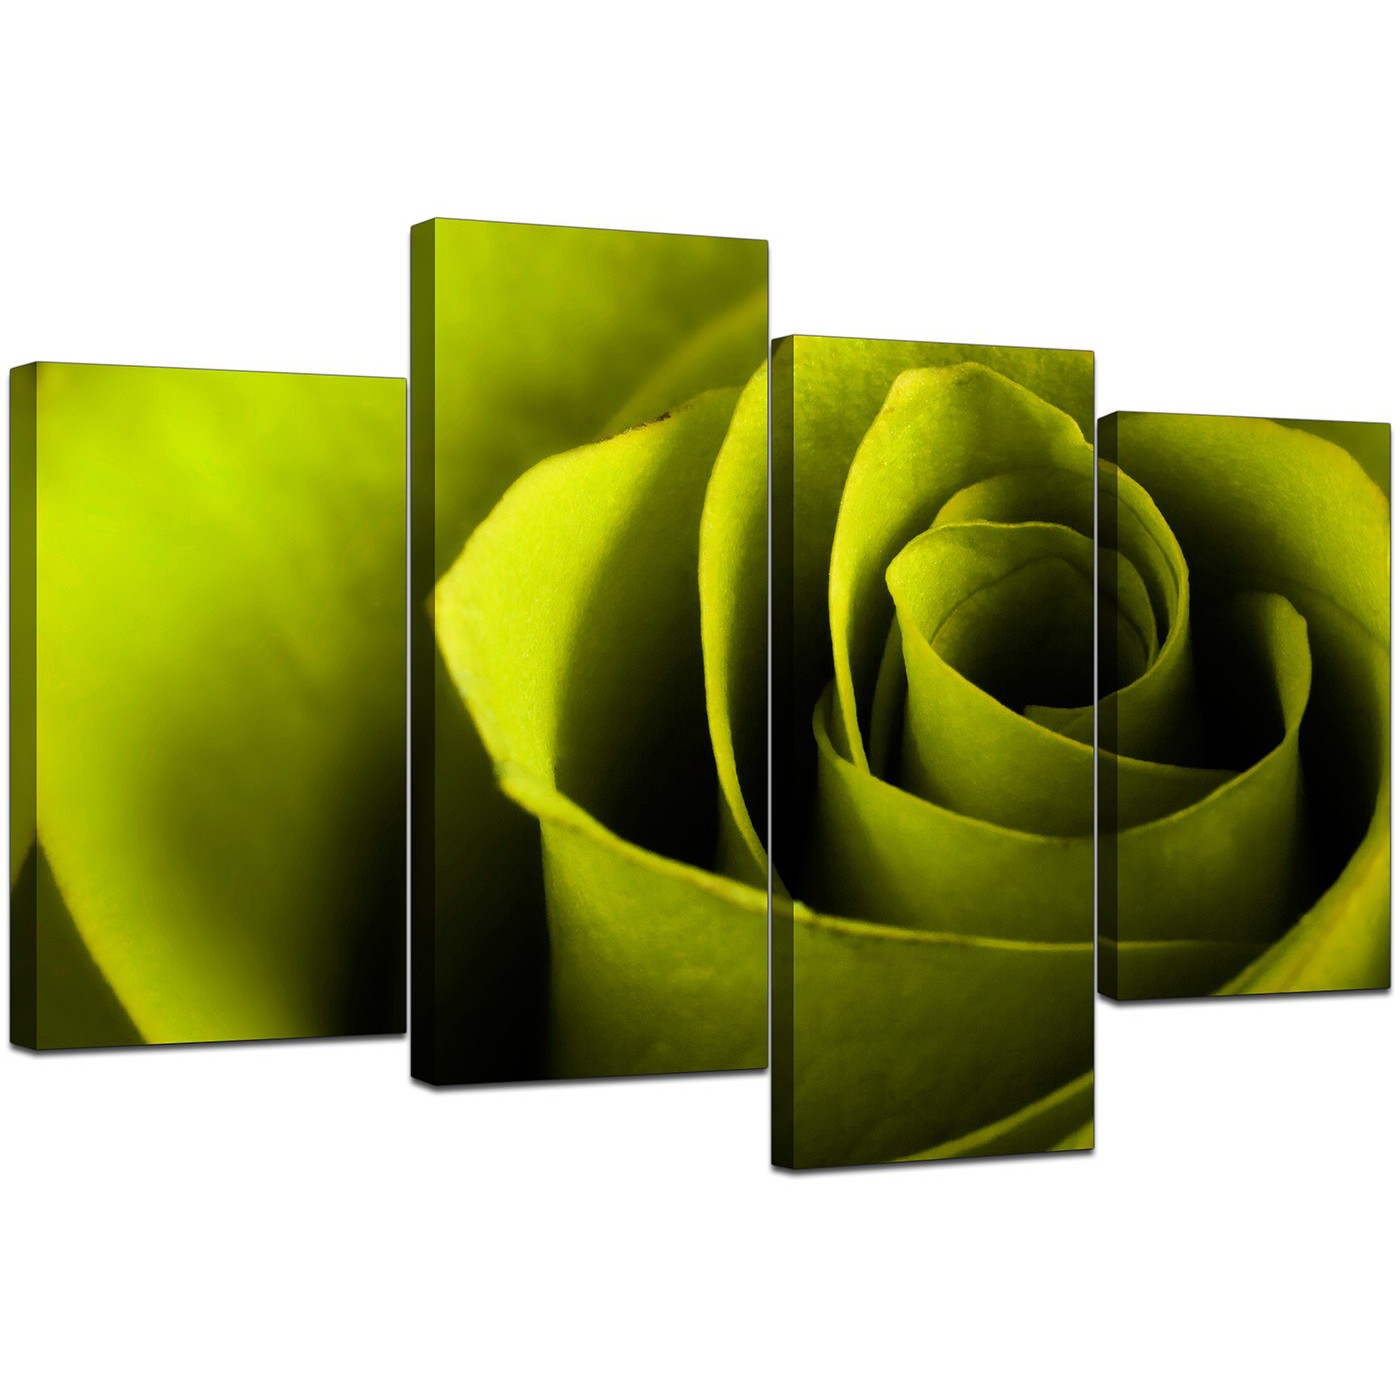 Wall Art Sets For Living Room Canvas Wall Art Of A Rose In Green For Your Living Room